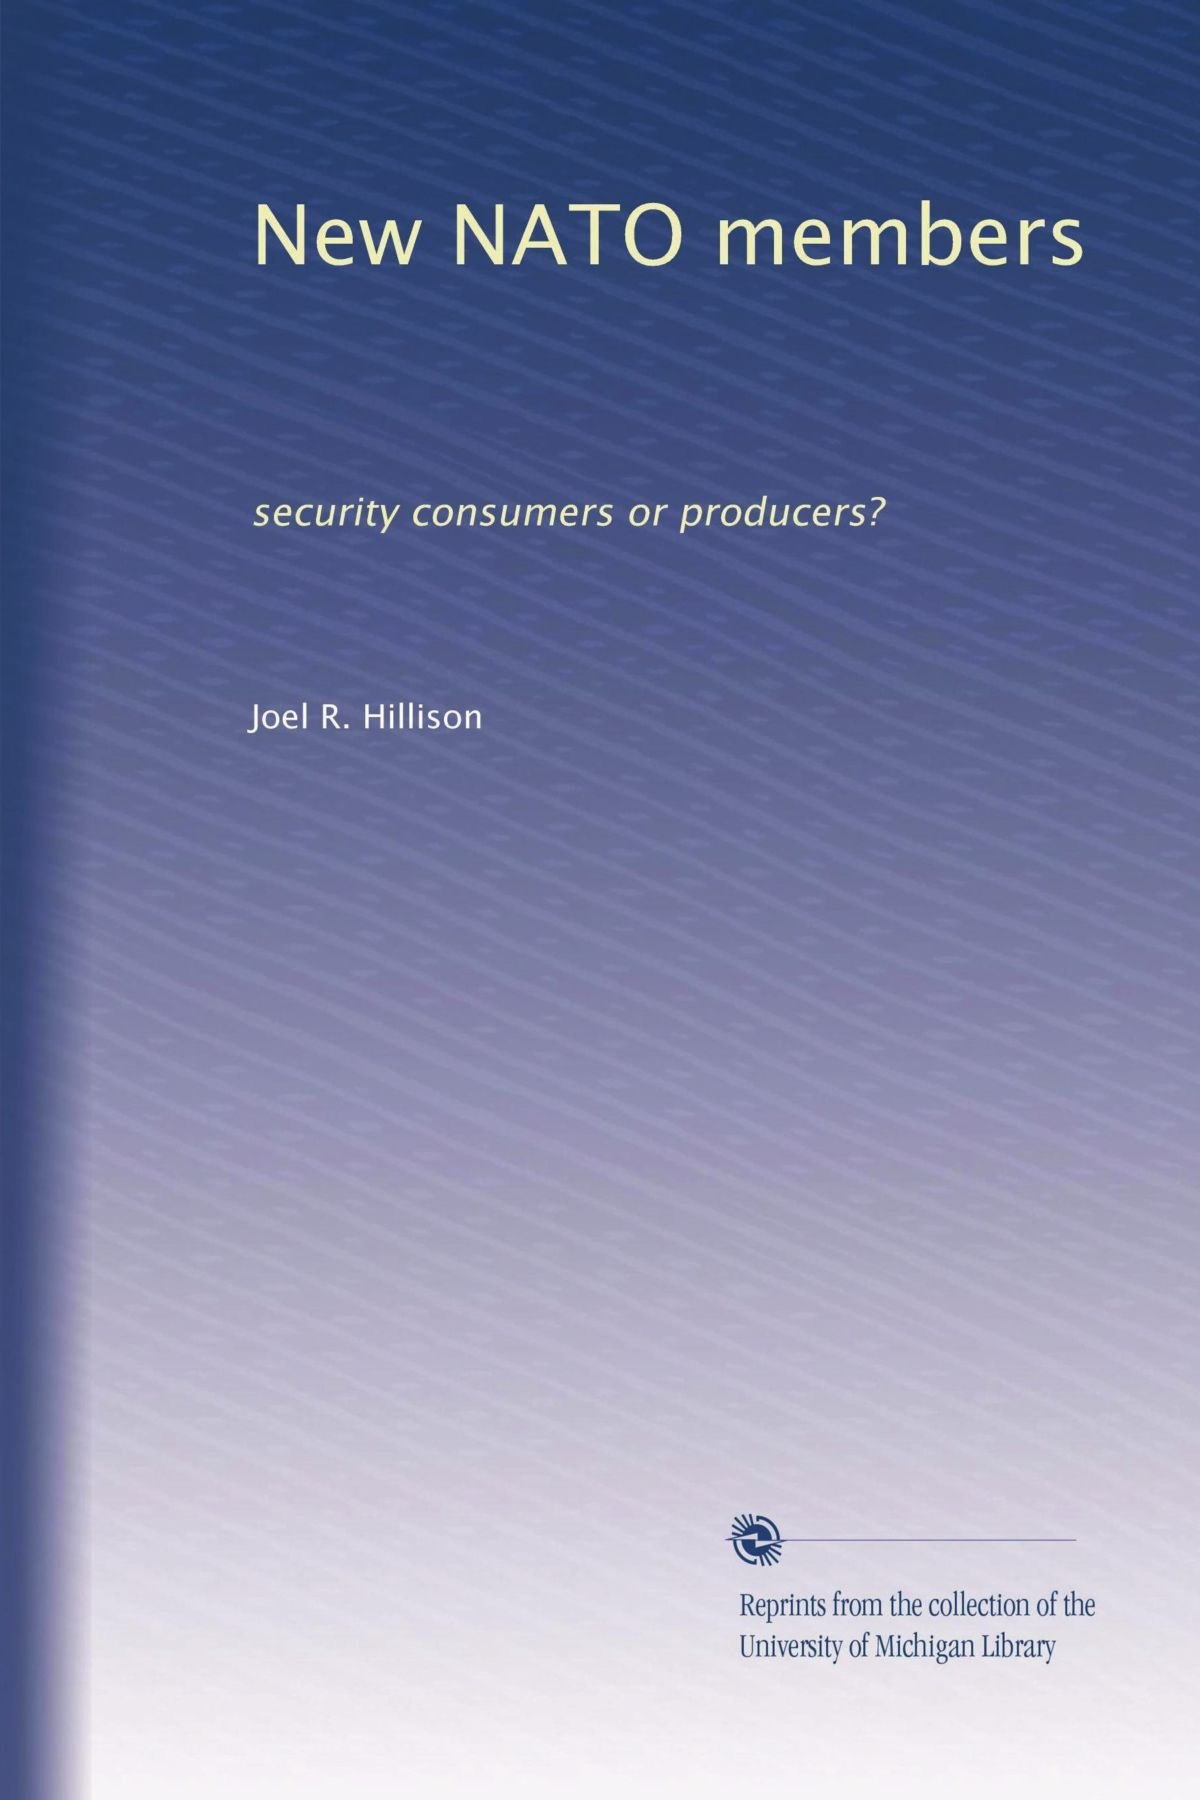 New NATO members: security consumers or producers? pdf